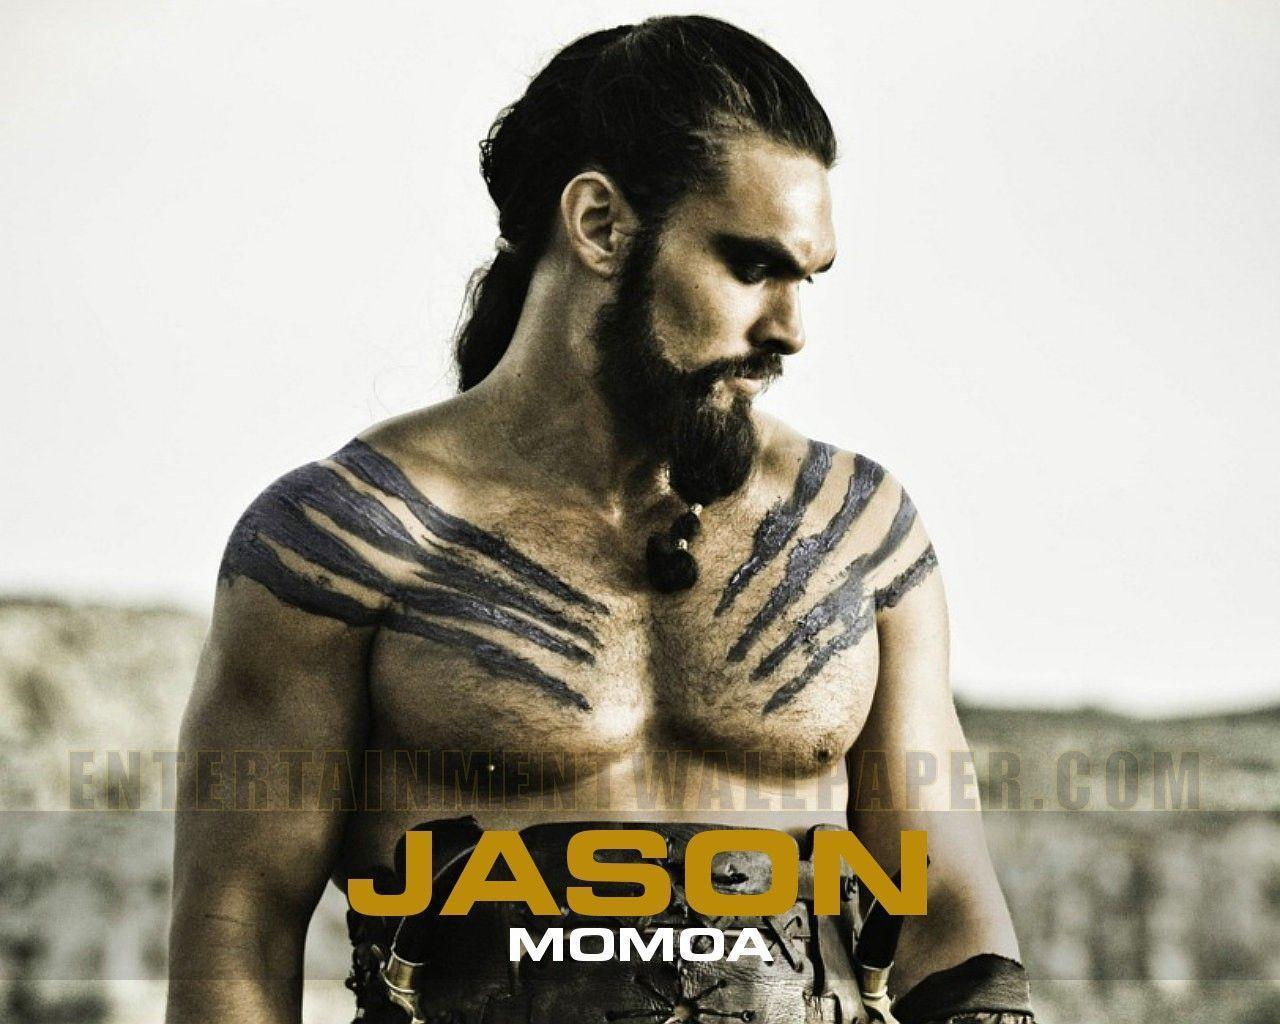 Jason Momoa Wallpapers 1280x1024